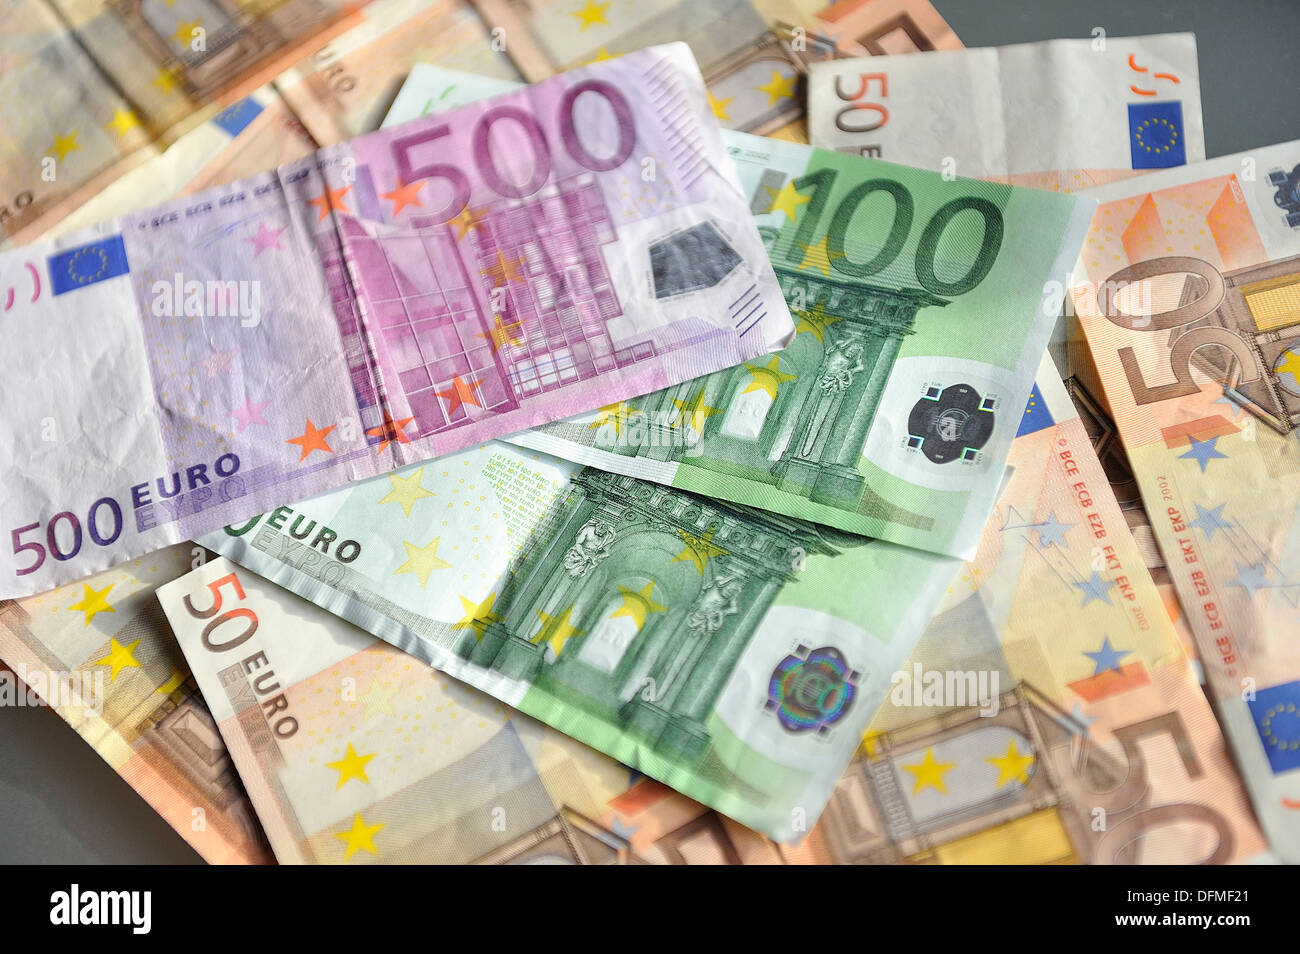 500, 100 and 50 Euros photographed closely and stacked - Stock Image